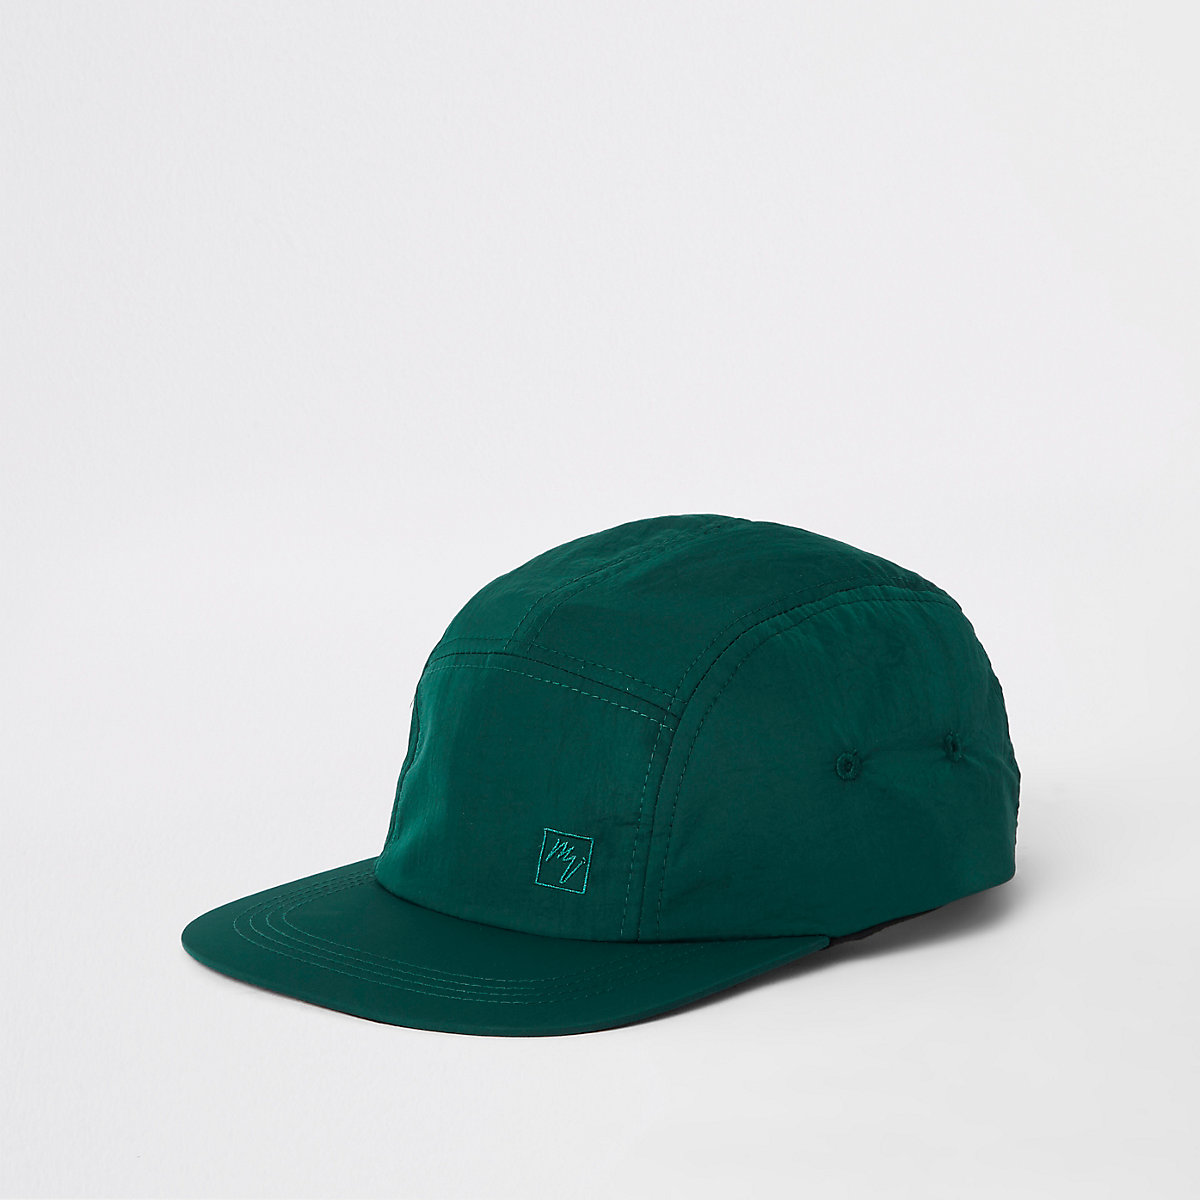 Green 'Maison Riviera' five panel cap